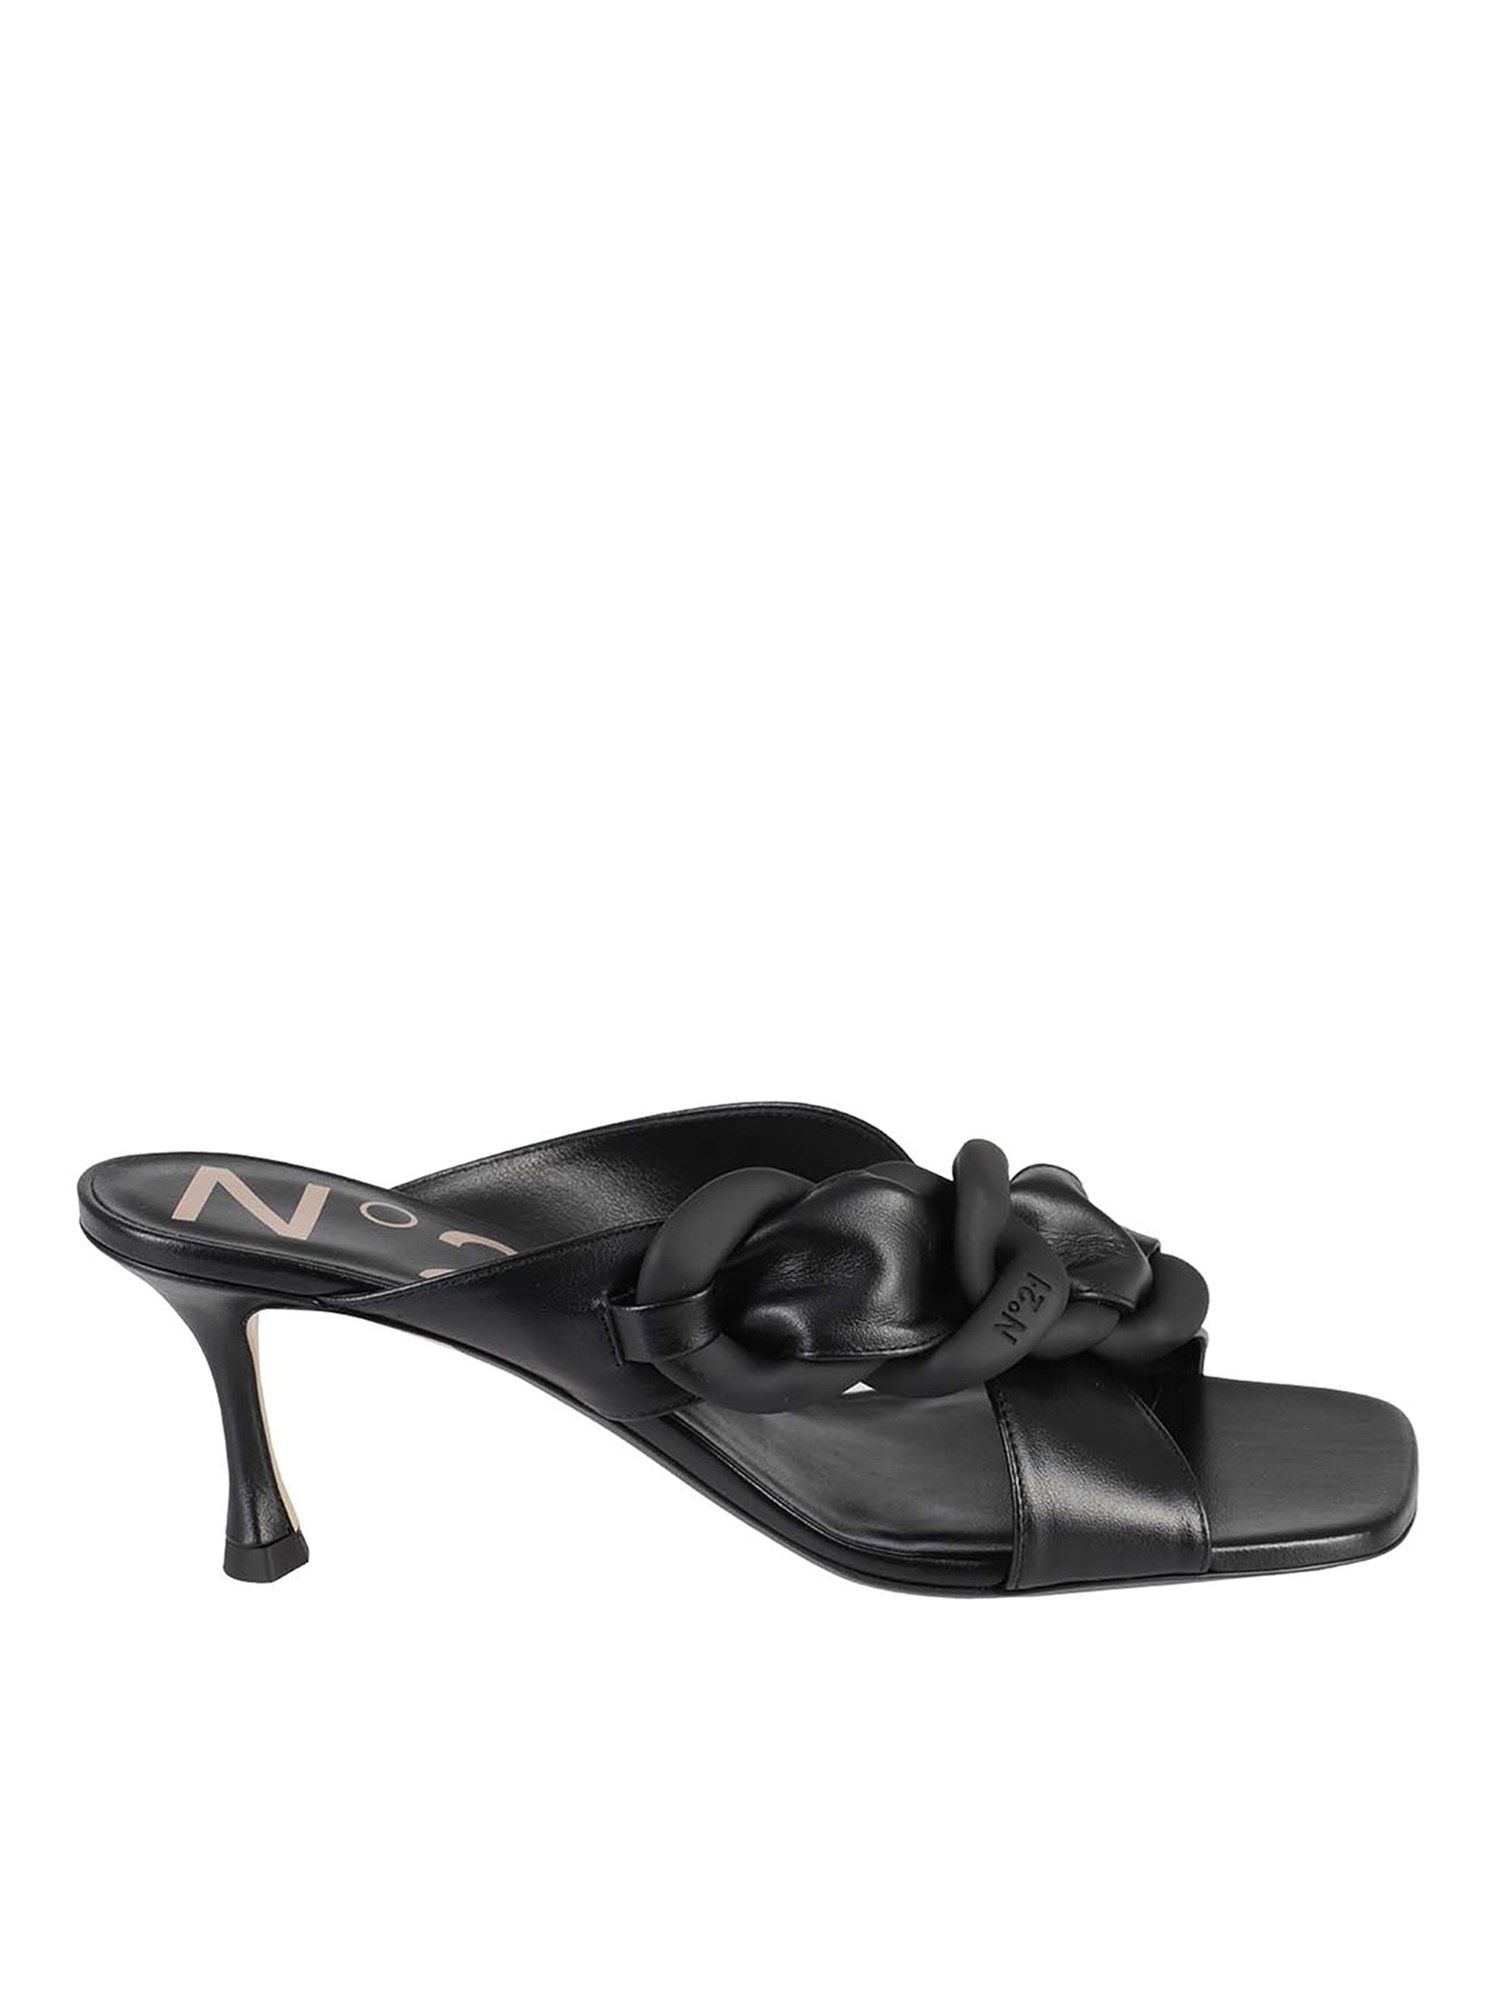 N°21 CHAIN DETAILED LEATHER SANDALS IN BLACK